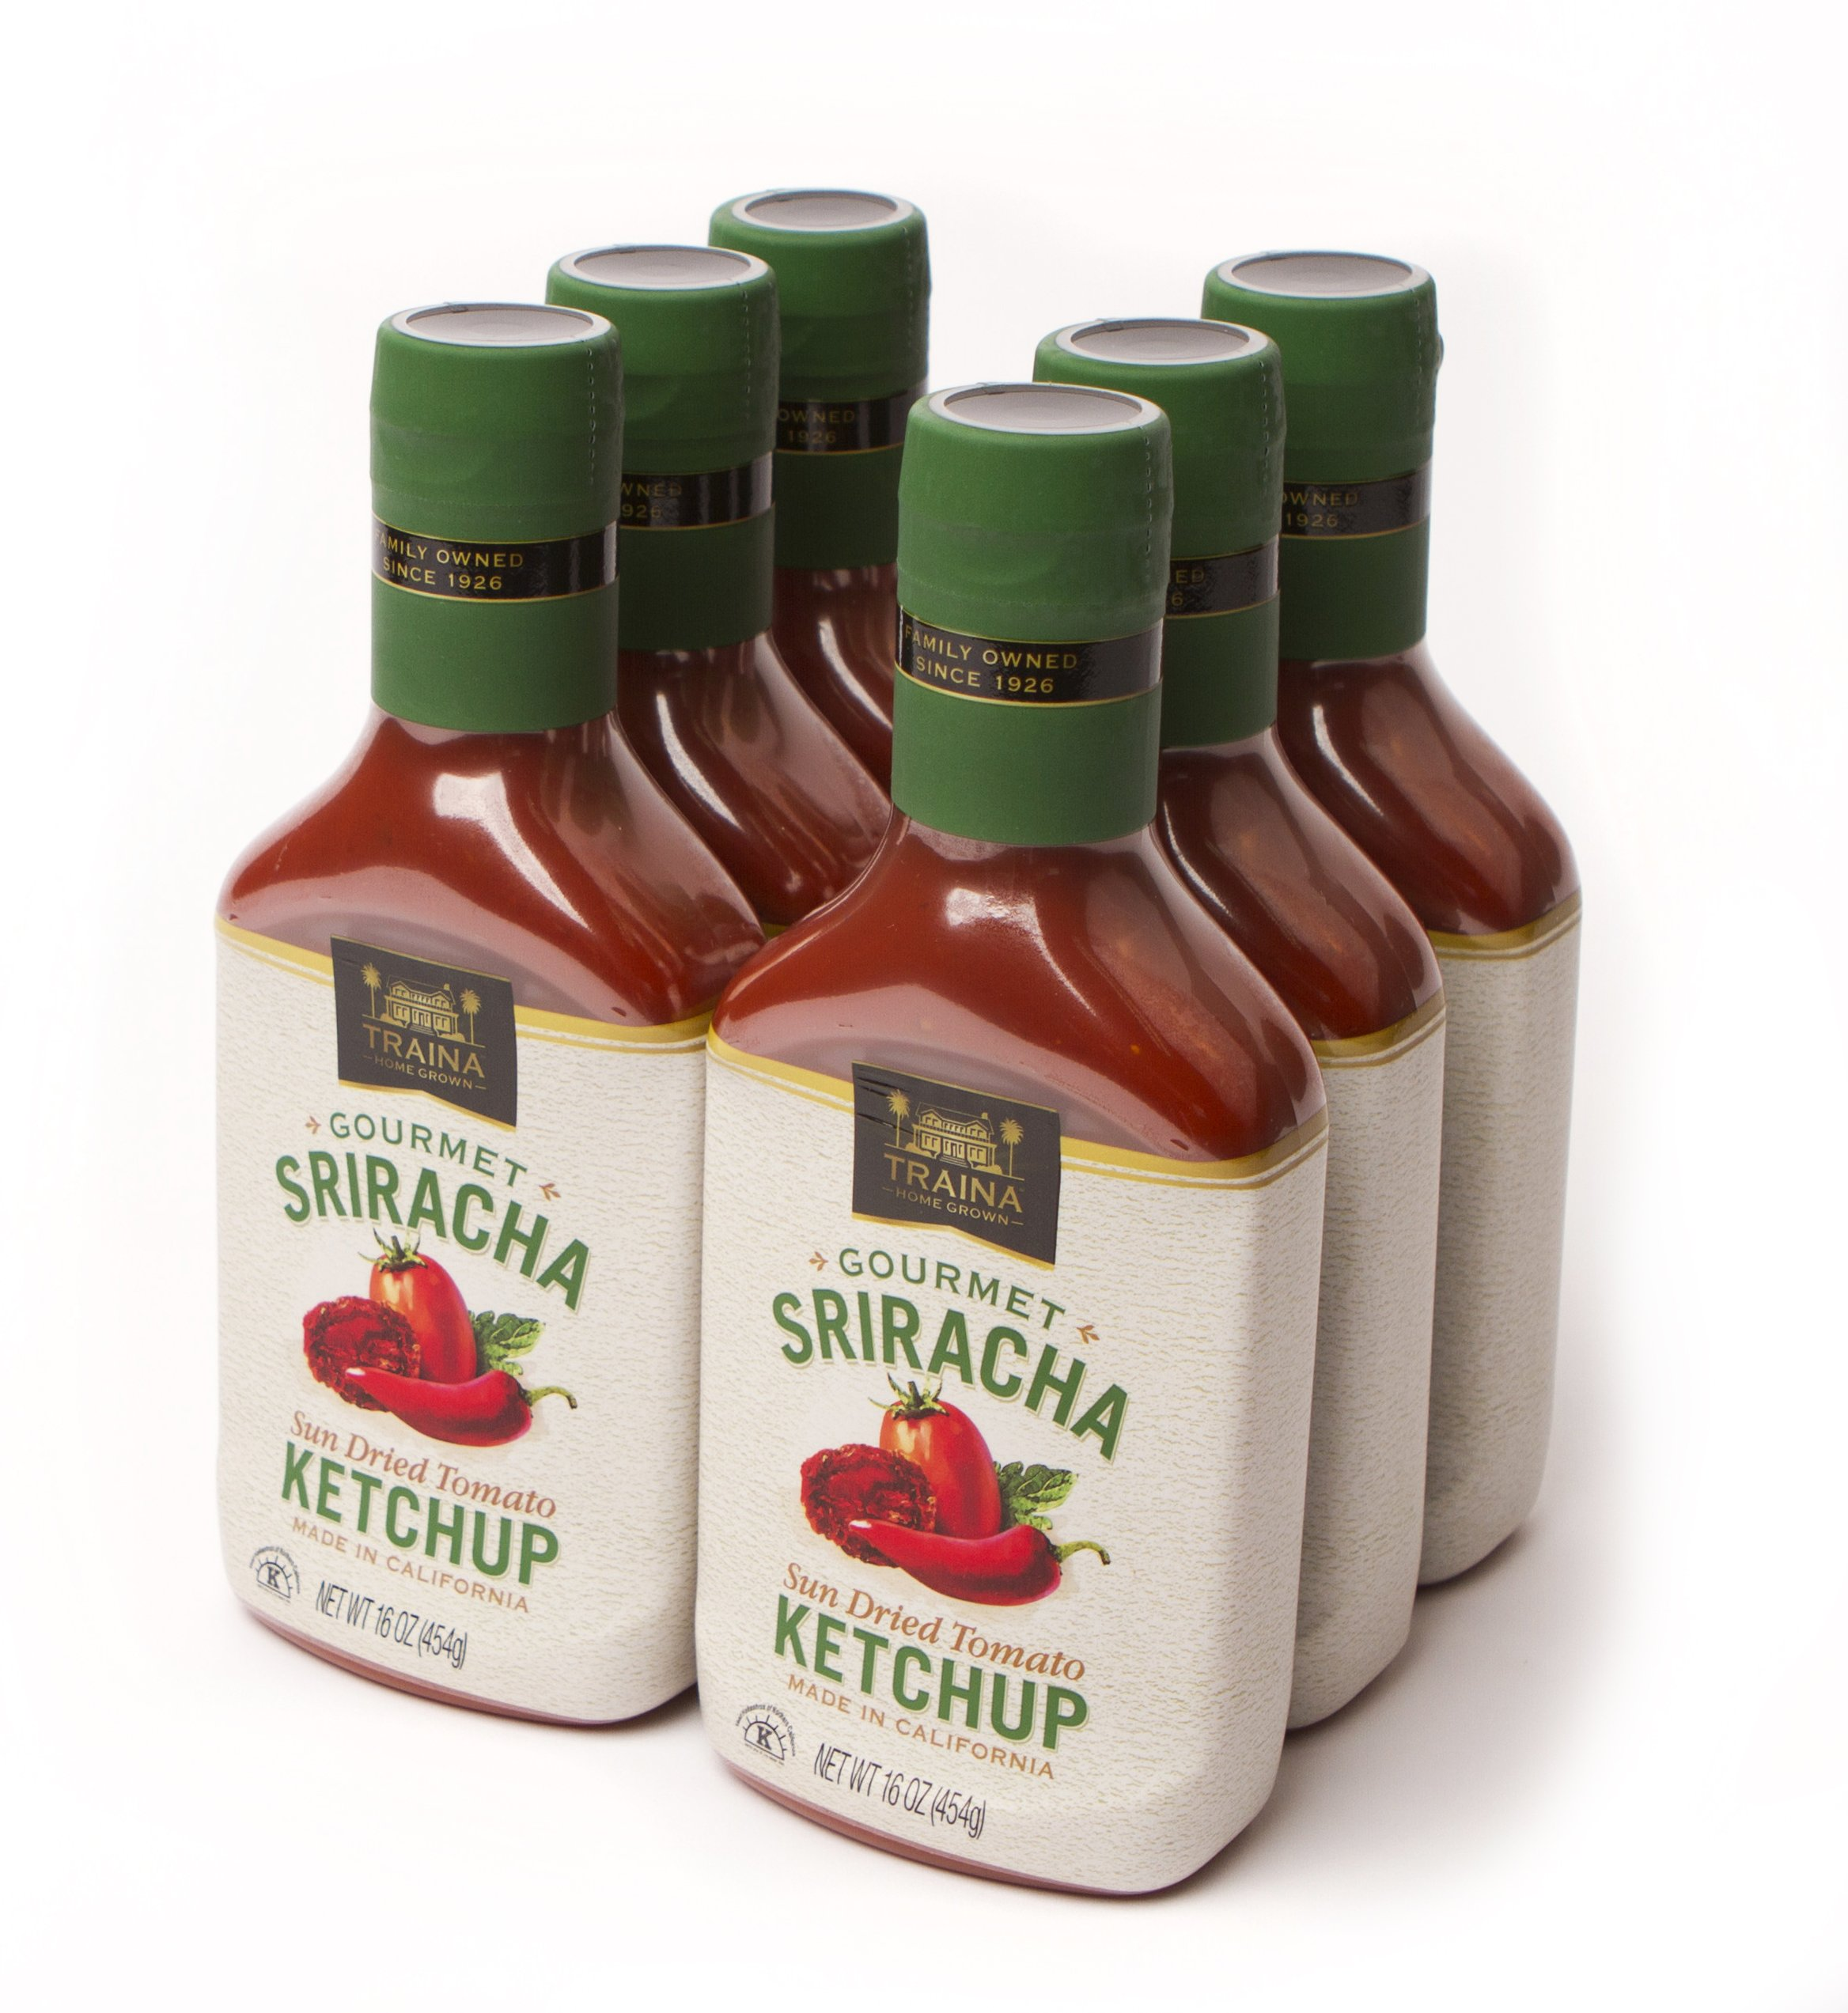 Traina Home Grown Sriracha Sun Dried Tomato Ketchup - Case of six 16 oz bottles